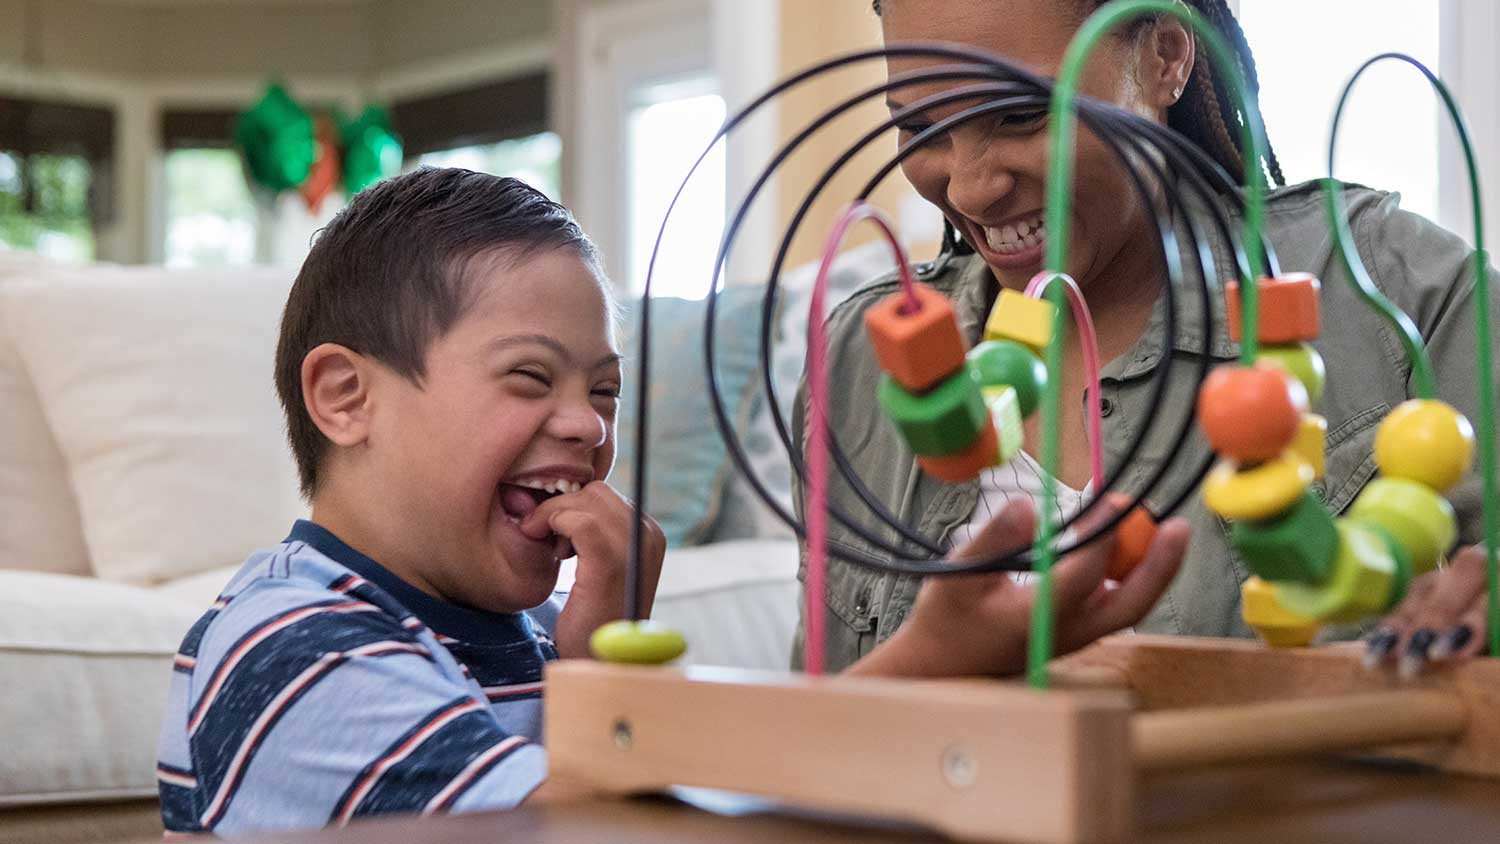 A child with down syndrome is playing with a toy, moving shapes across a wire. He and his teacher are laughing and happy.